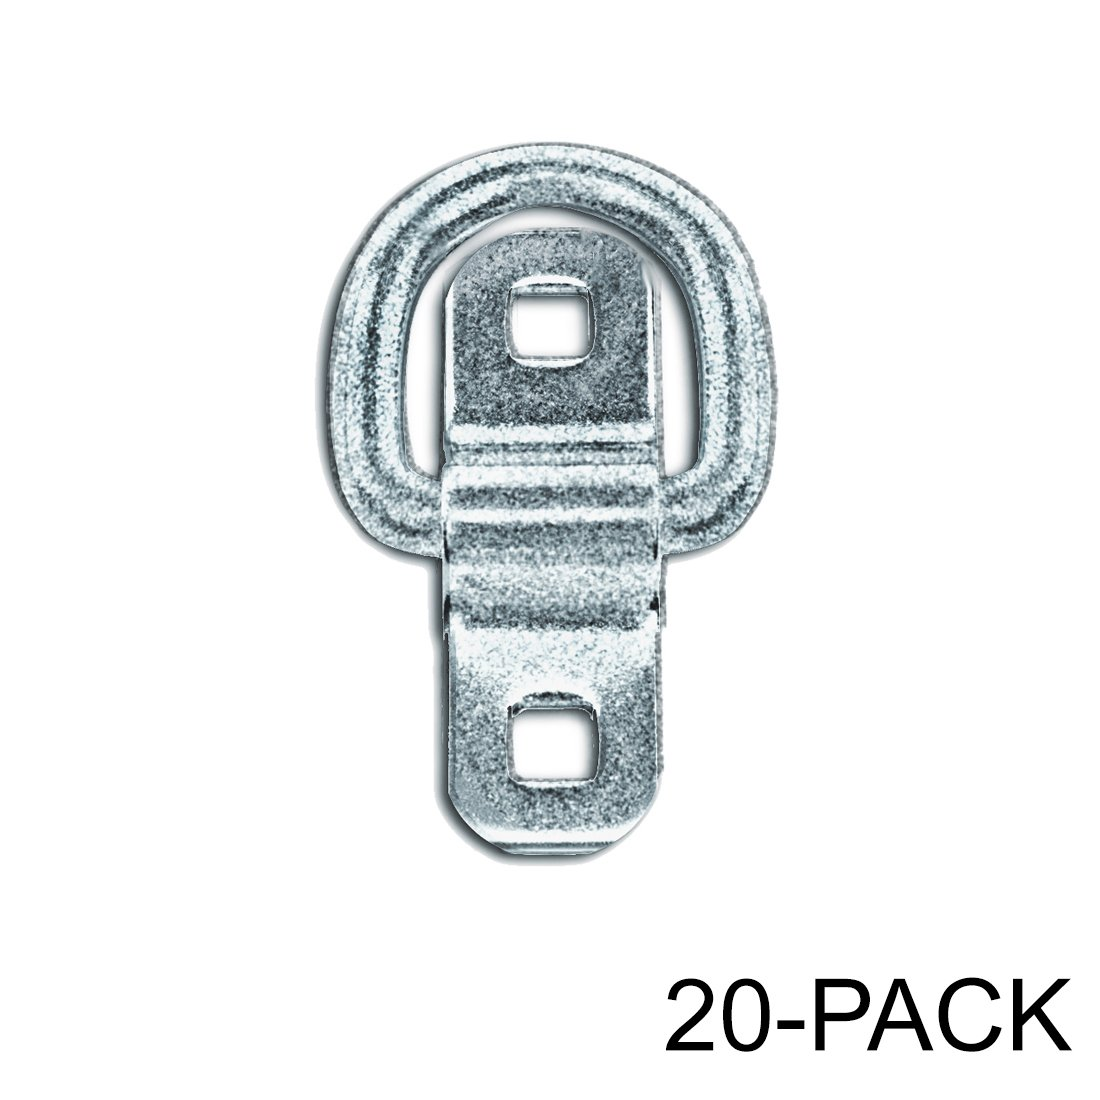 Heavy Duty USA Tiedown Anchors, Surface Mount D-Ring 6,000 lb. Capacity, 20-Pack